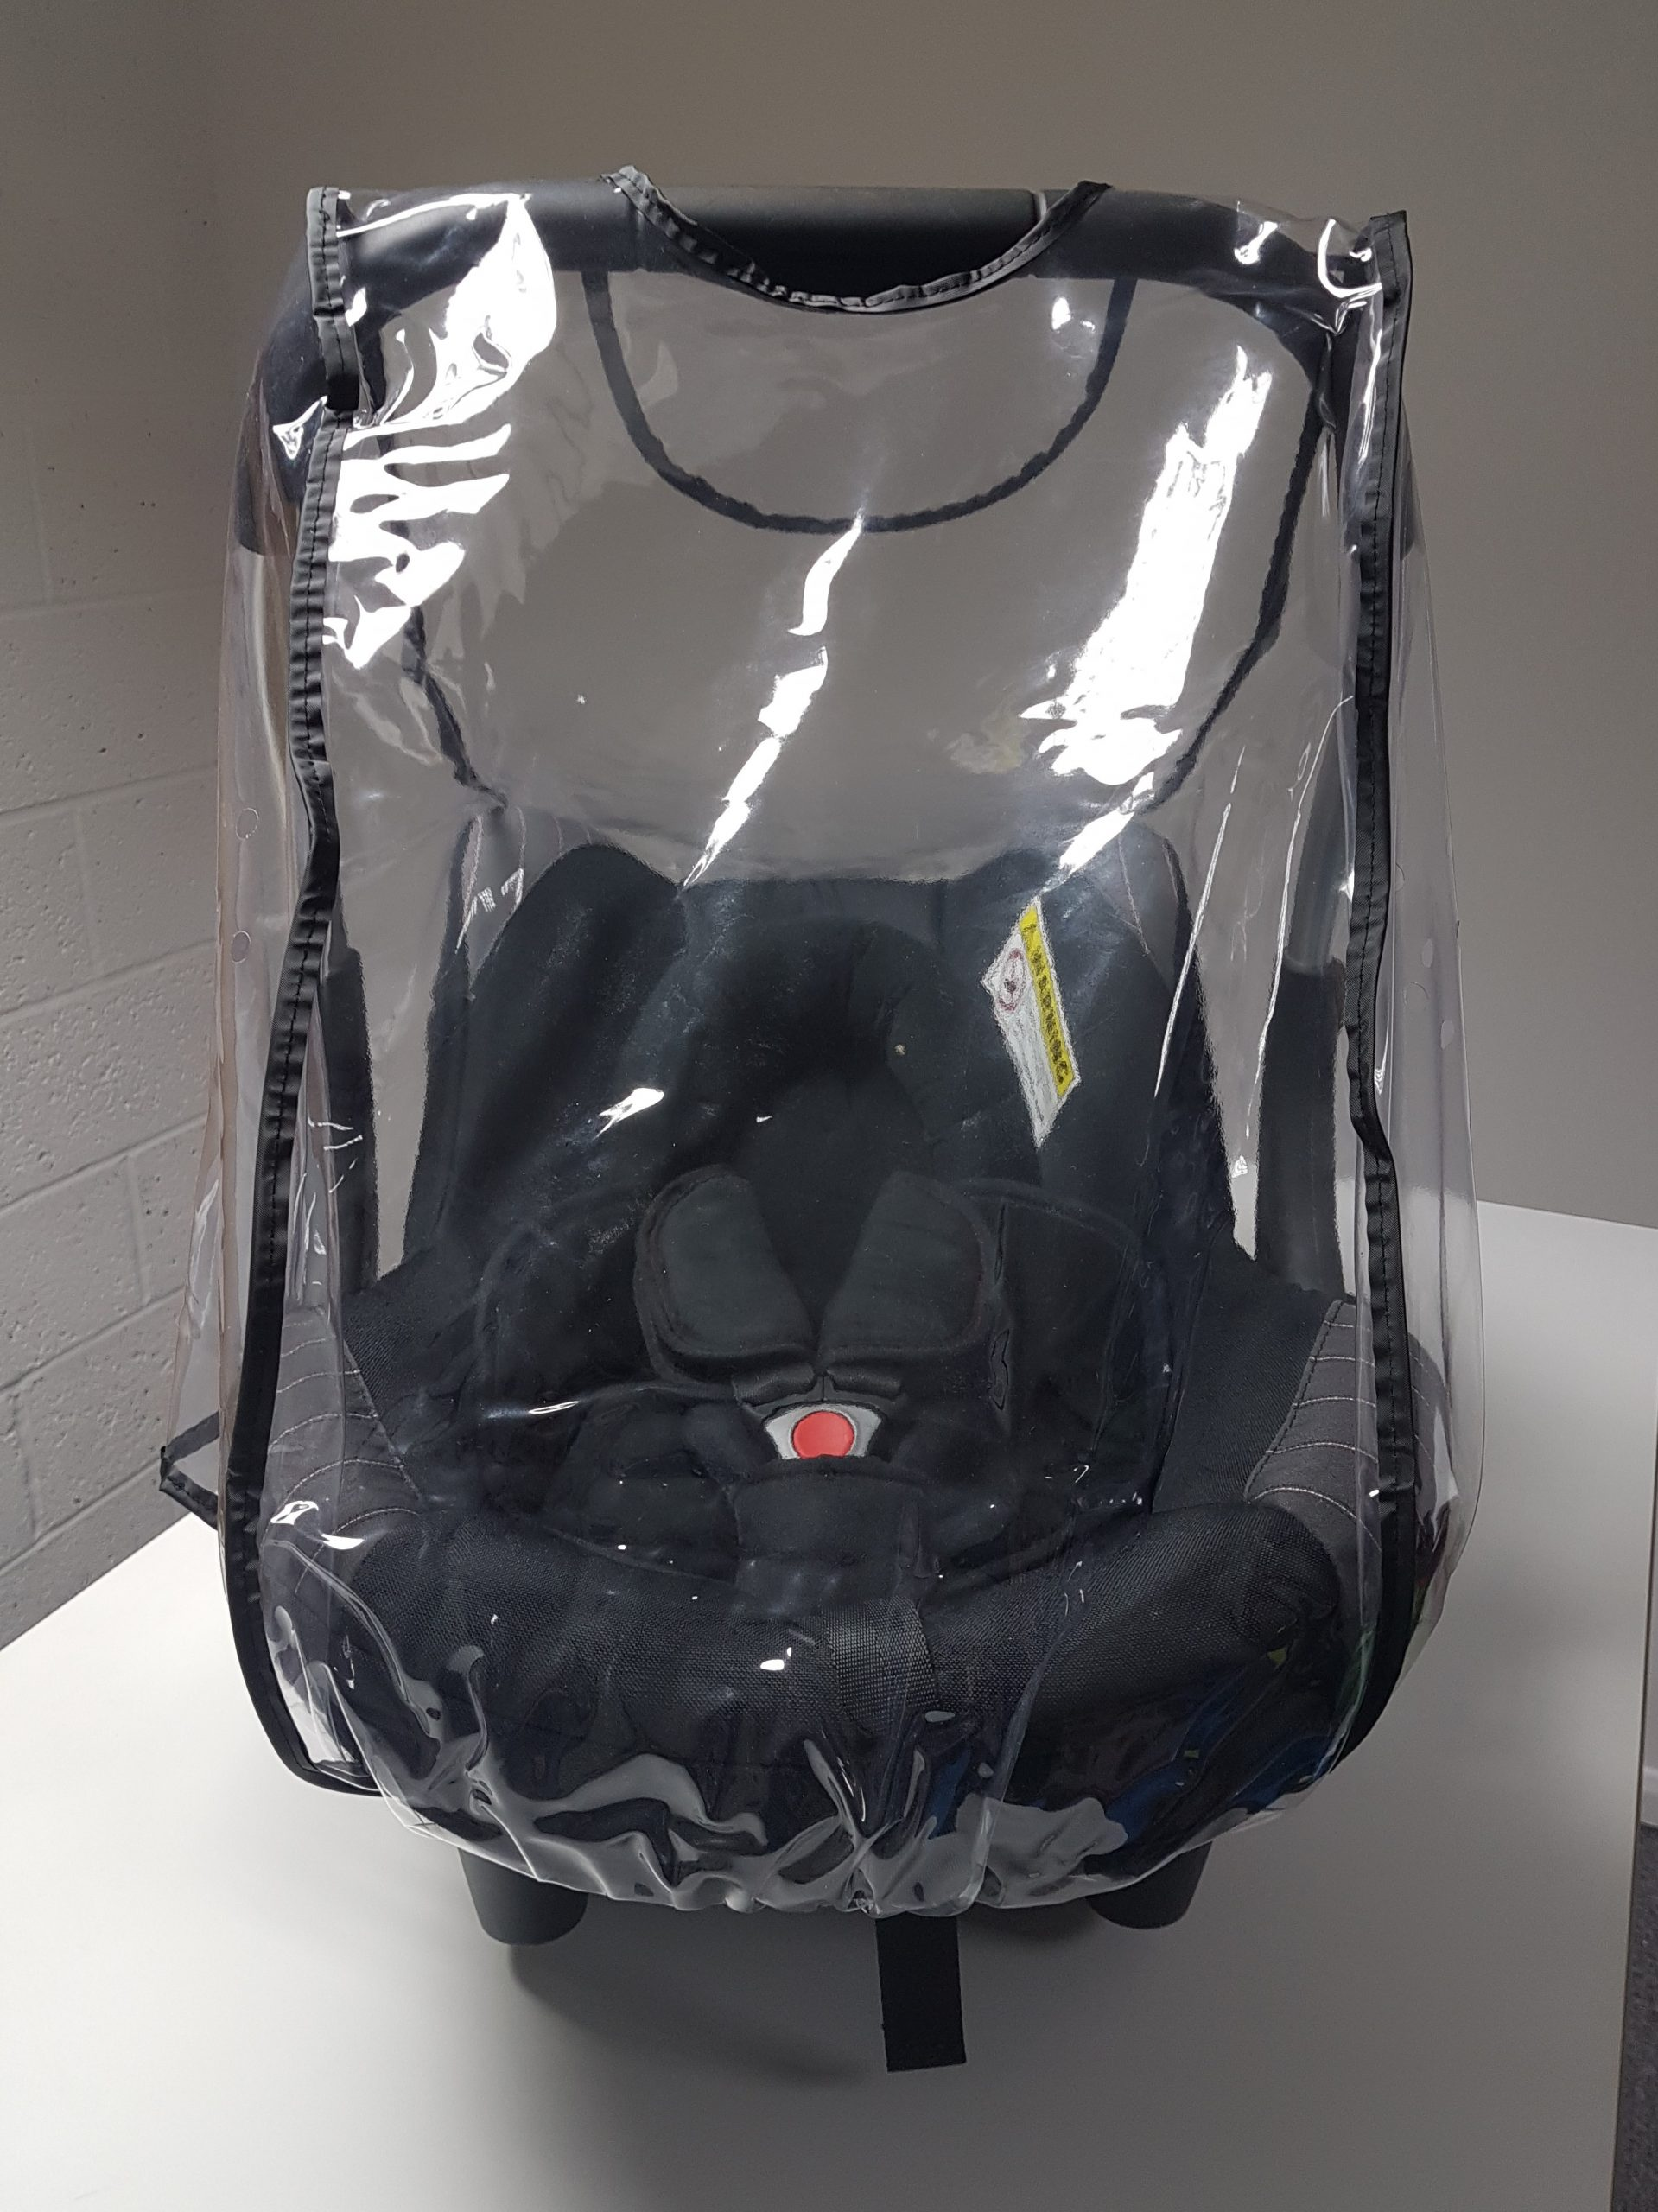 Rain cover for the Hauck Zero car seat